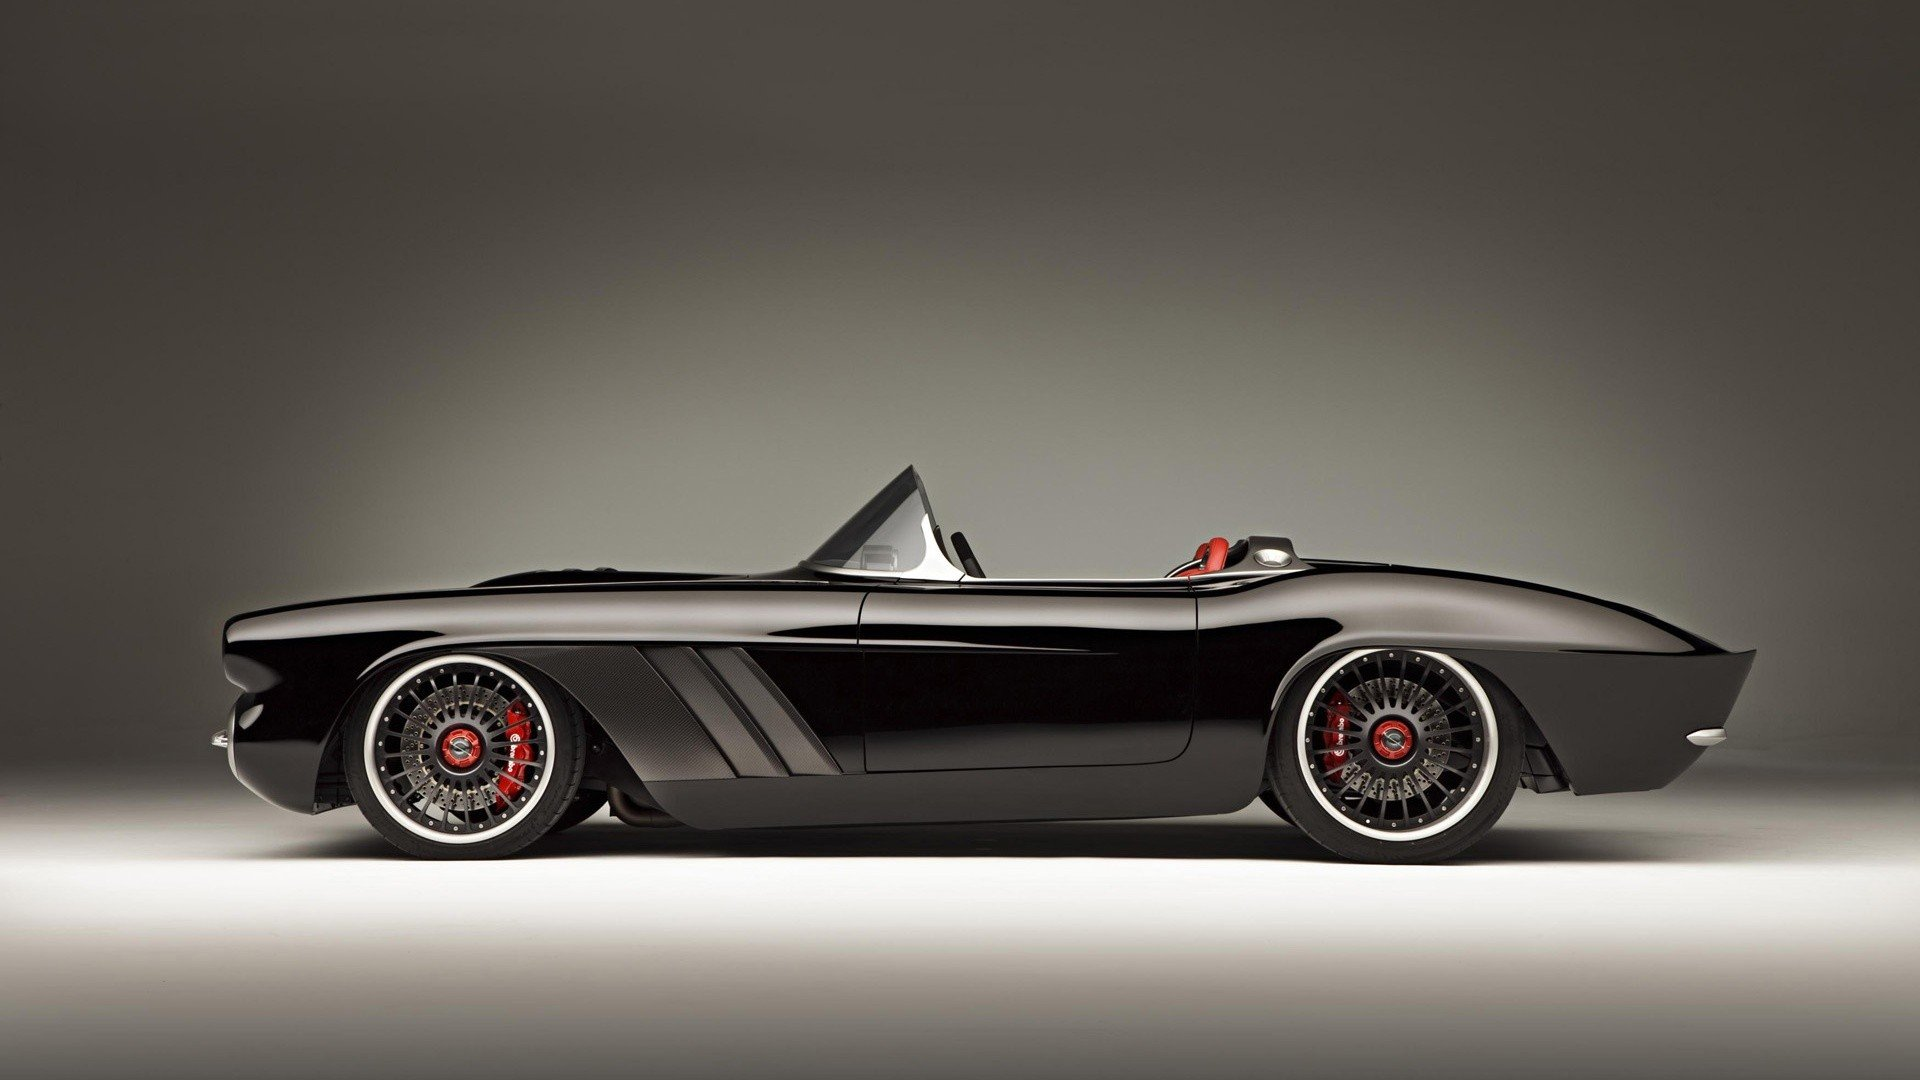 1962 Chevrolet Corvette C1 RS Roadster